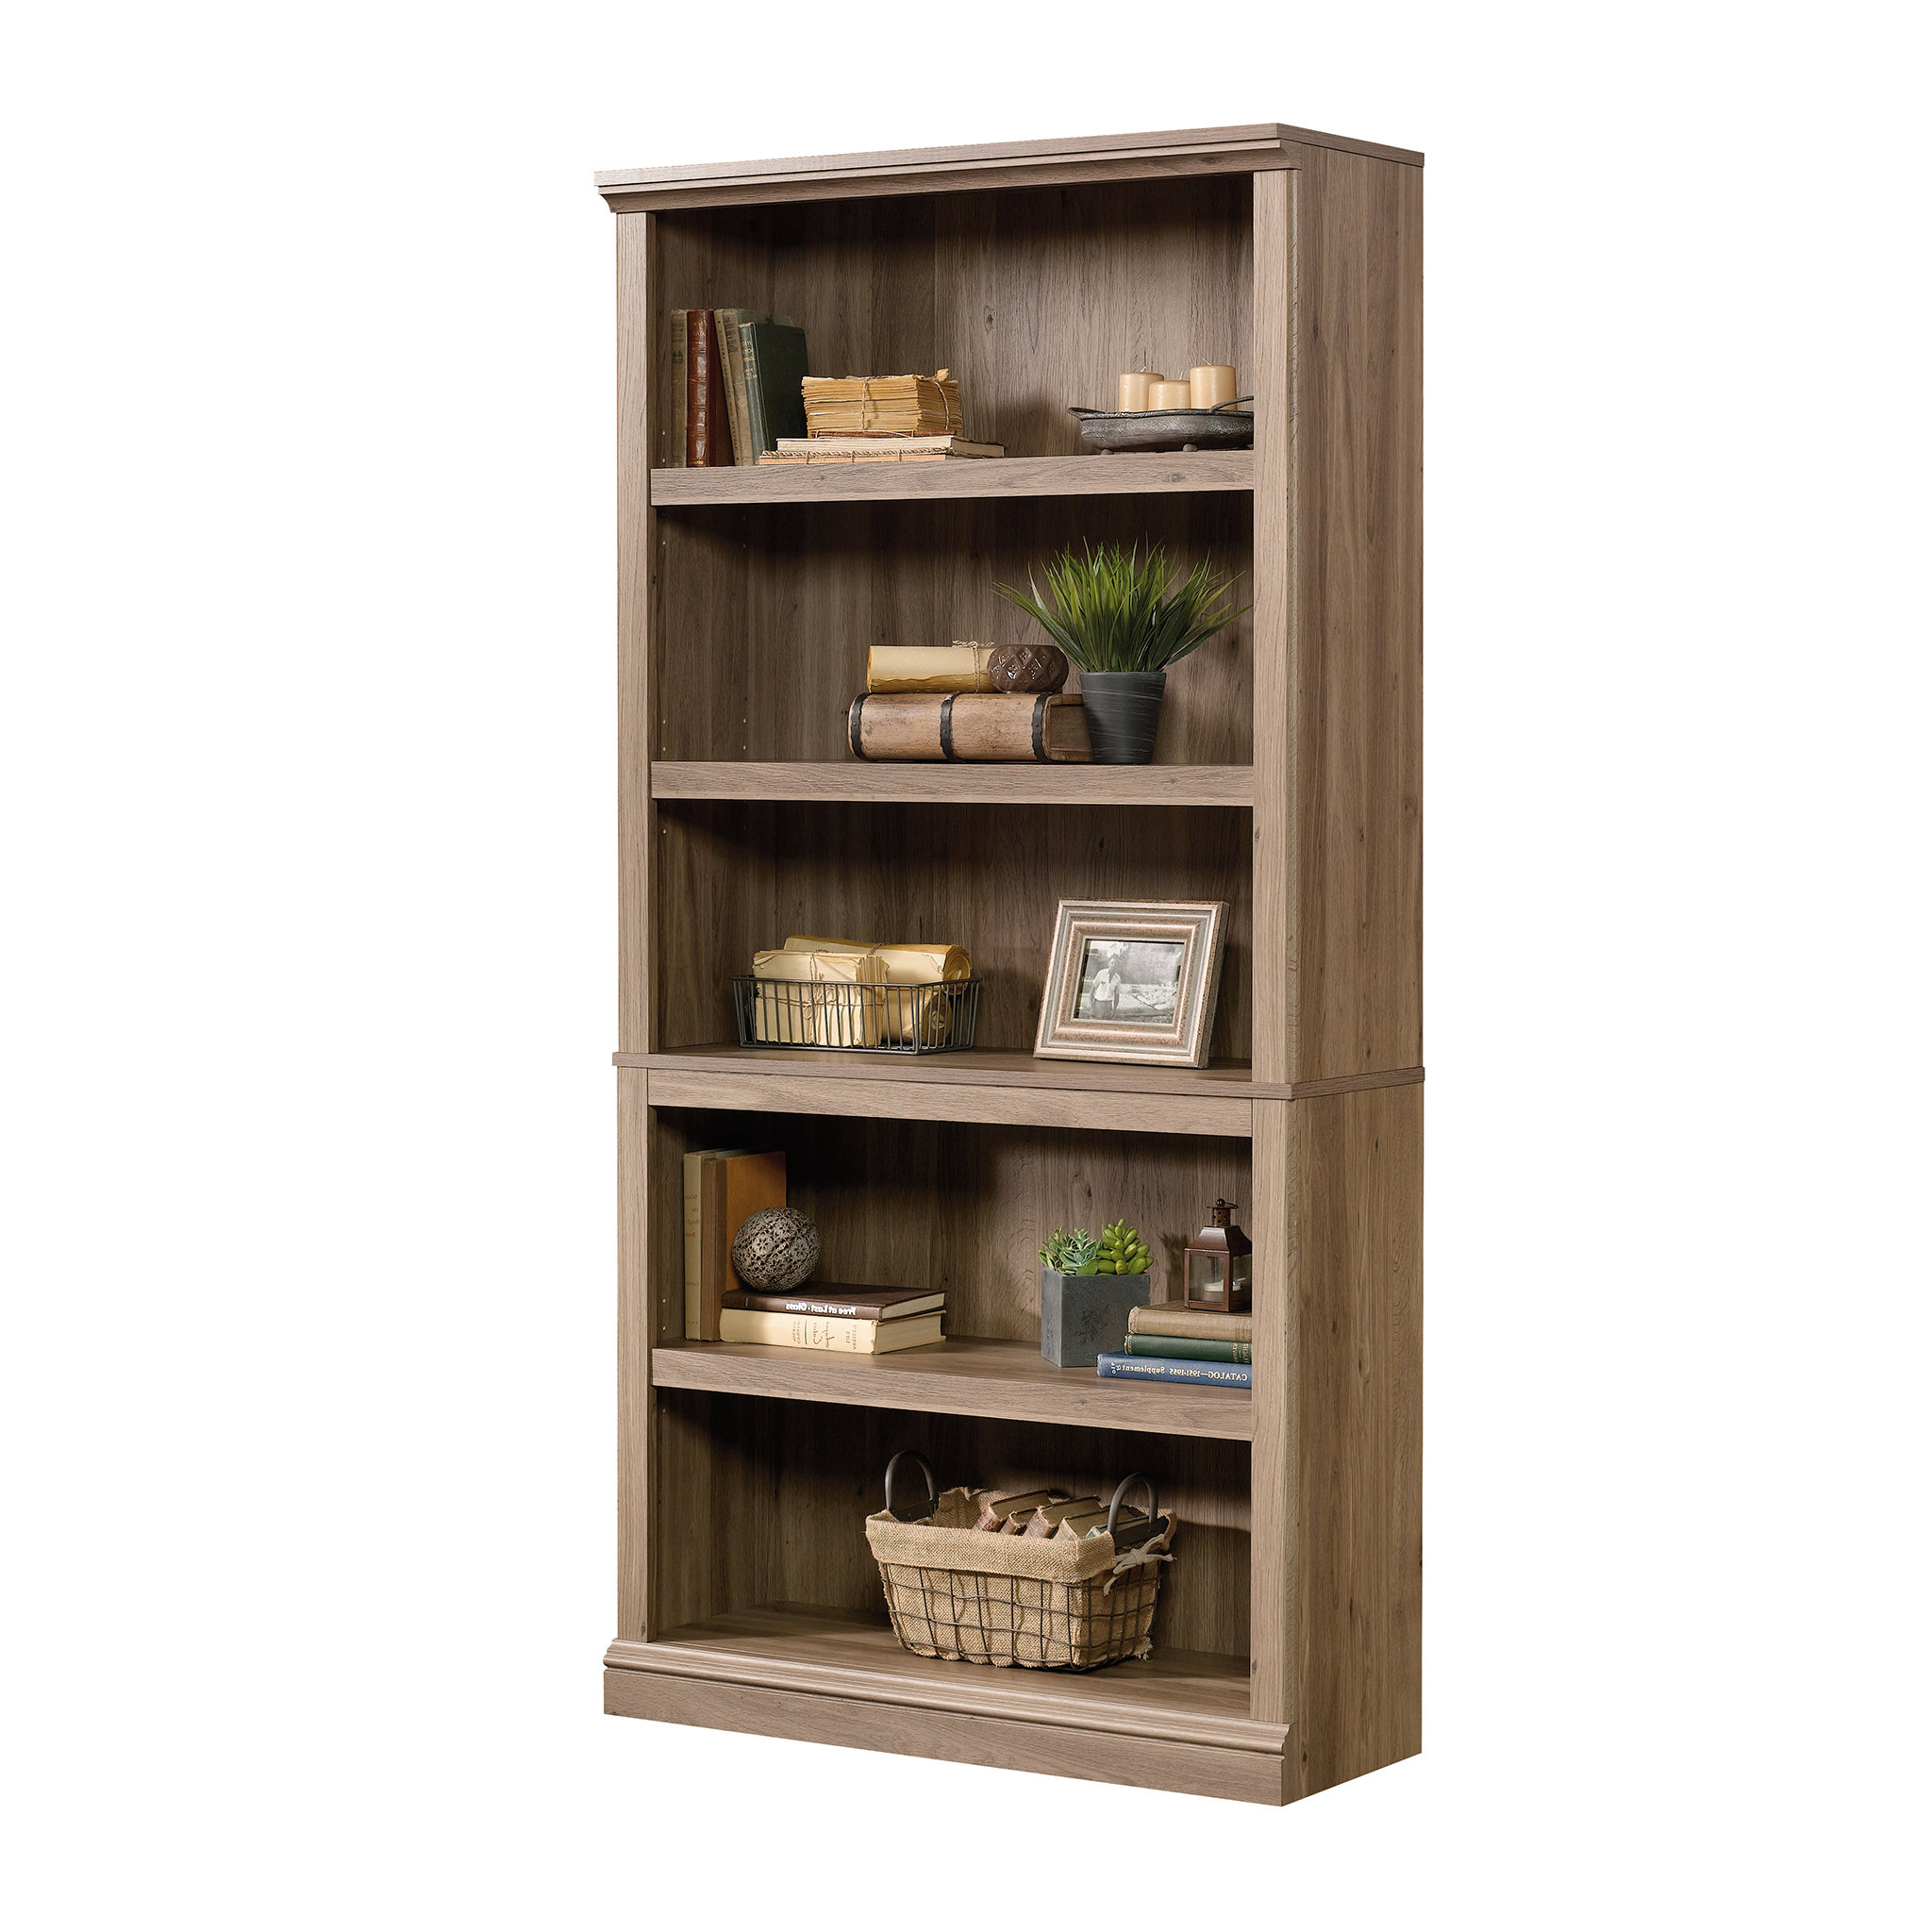 2020 Abigail Standard Bookcase Pertaining To Axess Standard Bookcases (Gallery 16 of 20)